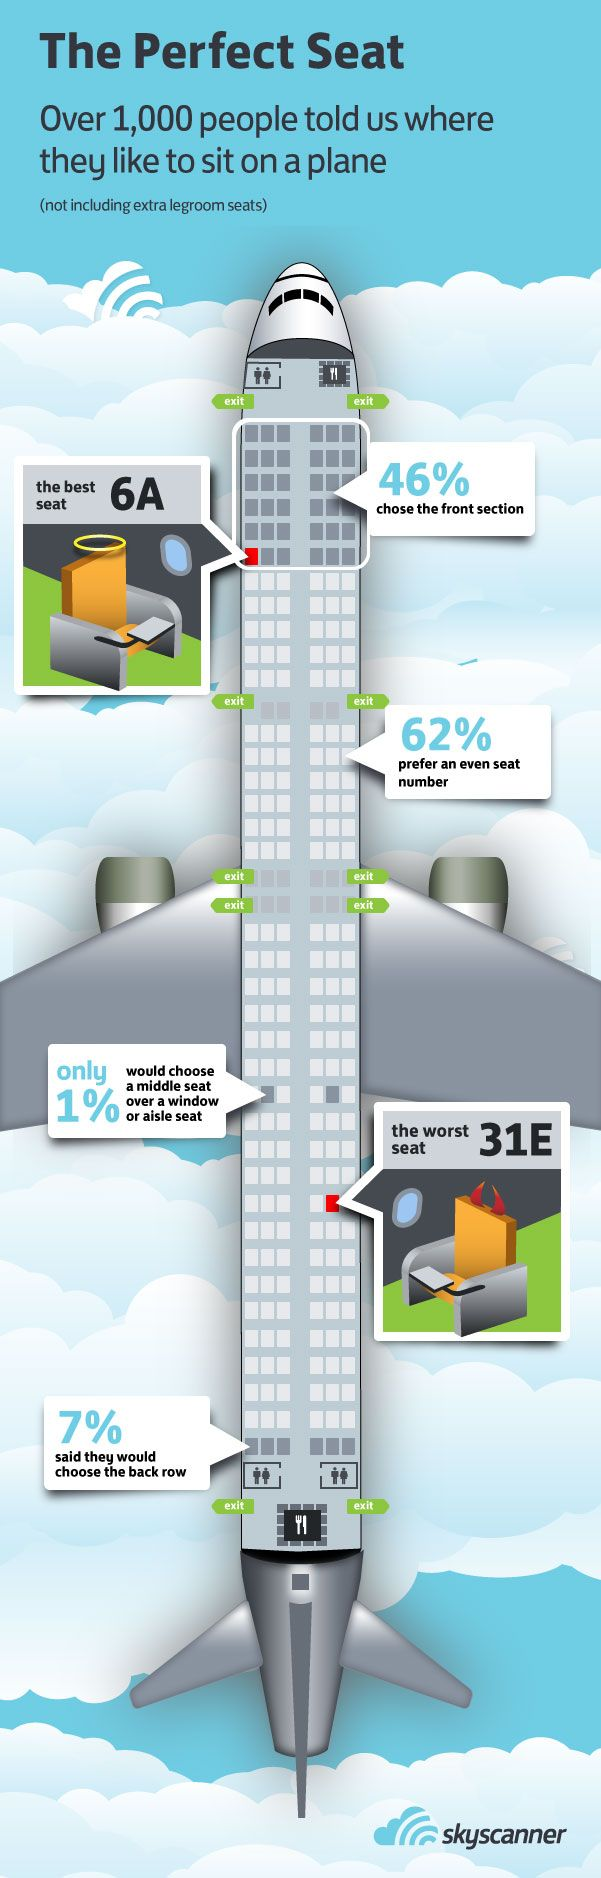 The perfect seat - Survey: Over 1000 people told Skyscanner where they like to sit on a plane